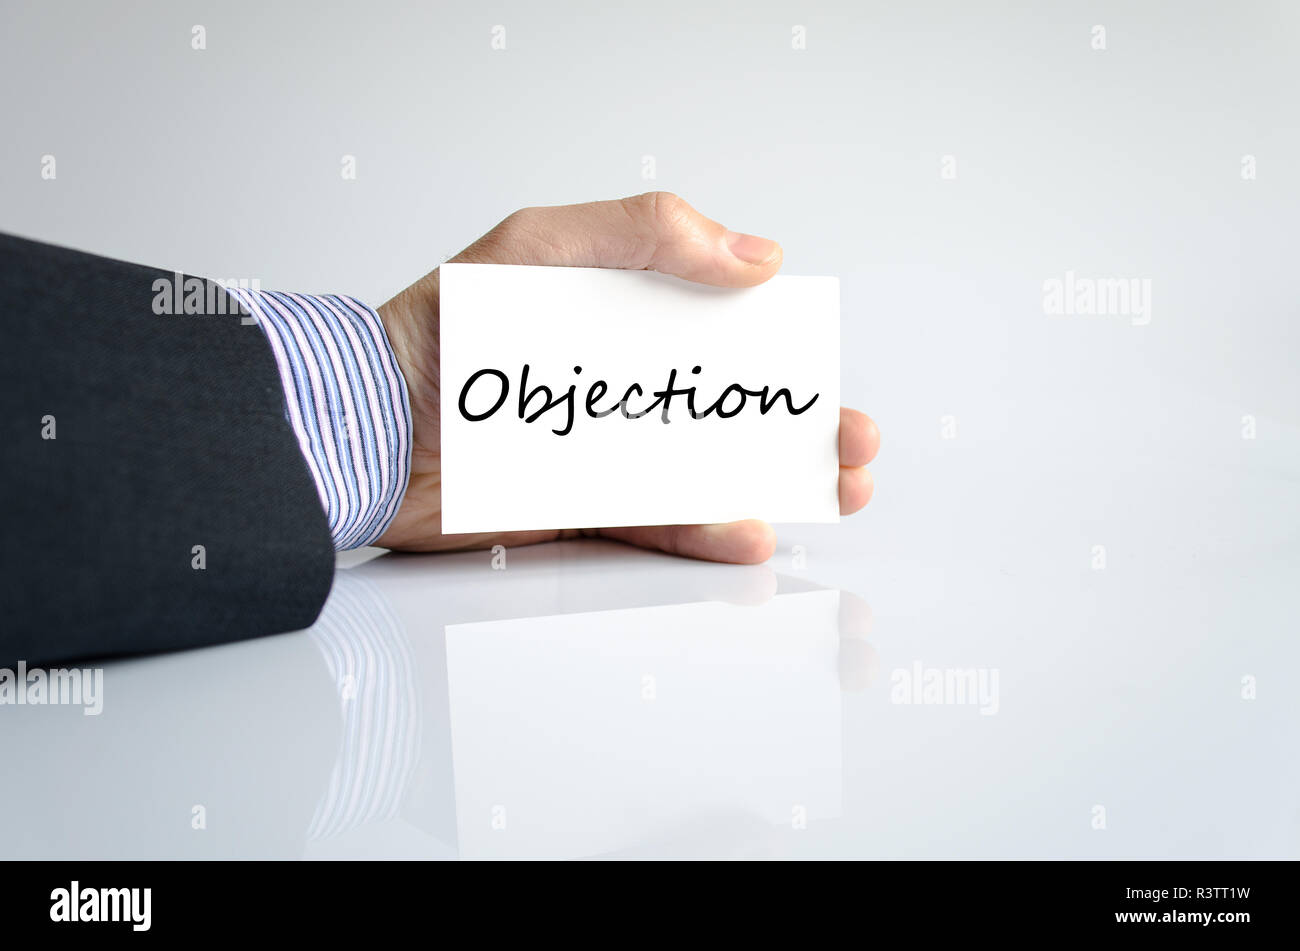 Objection text concept - Stock Image